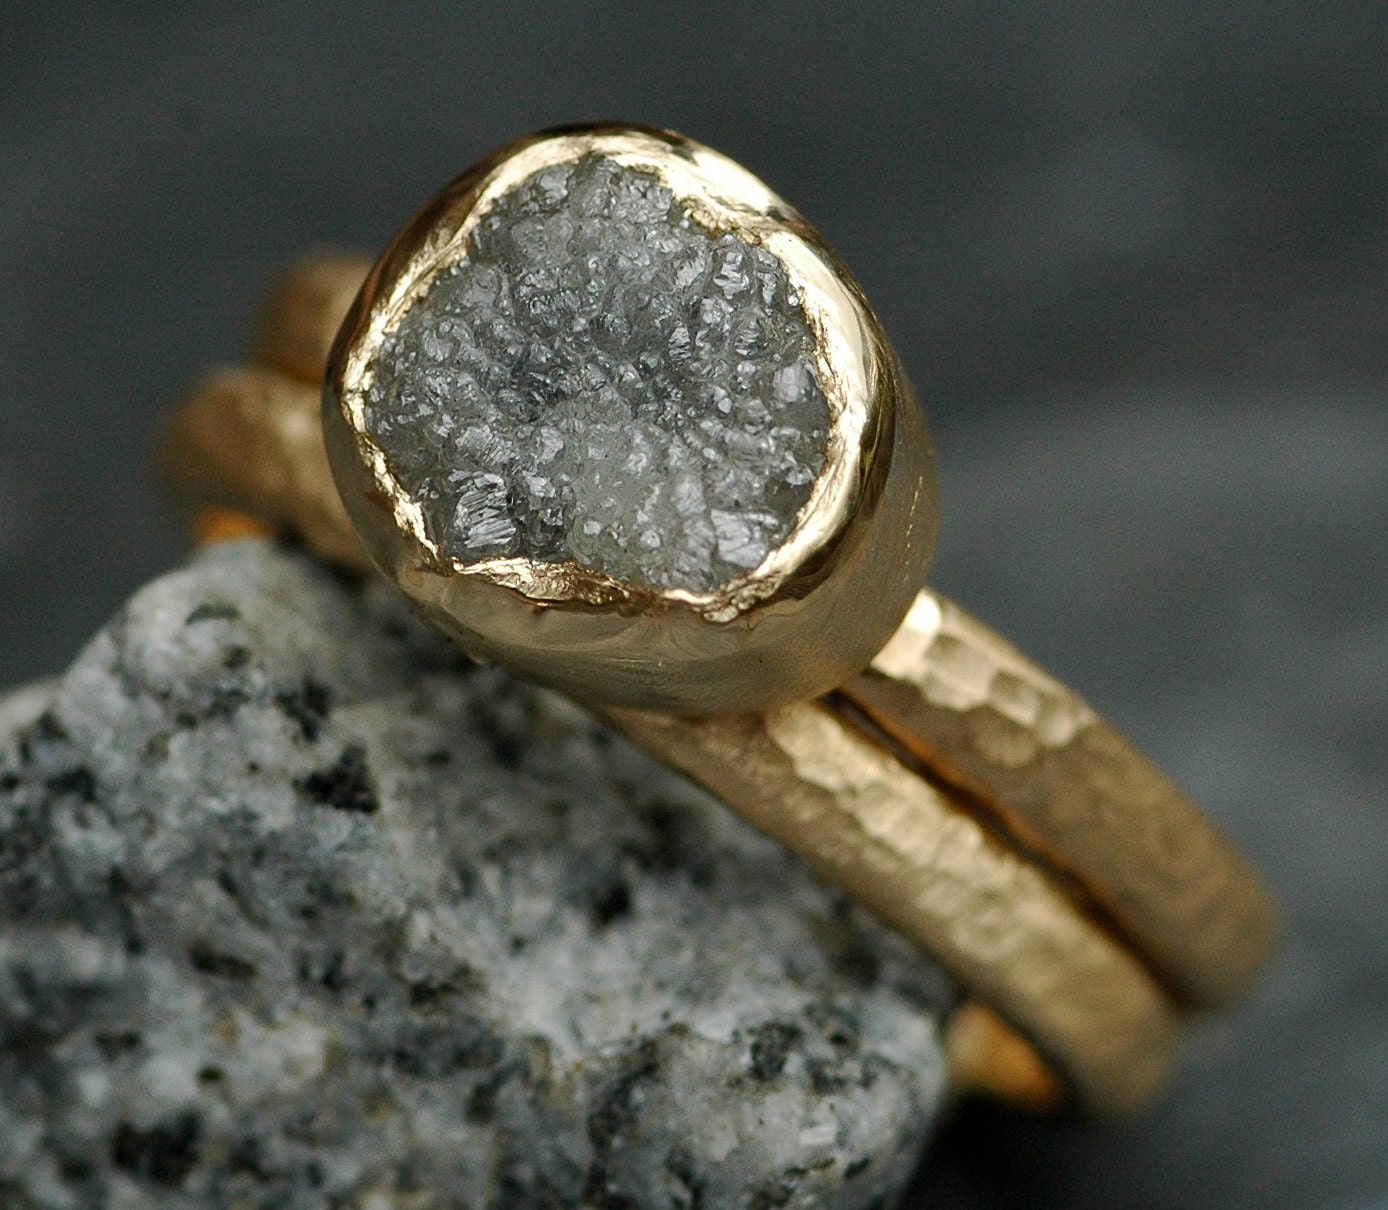 aquamarine stone three custom gold a ring engagement uncut raw of one rose pin kind gemstone rings wedding diamond